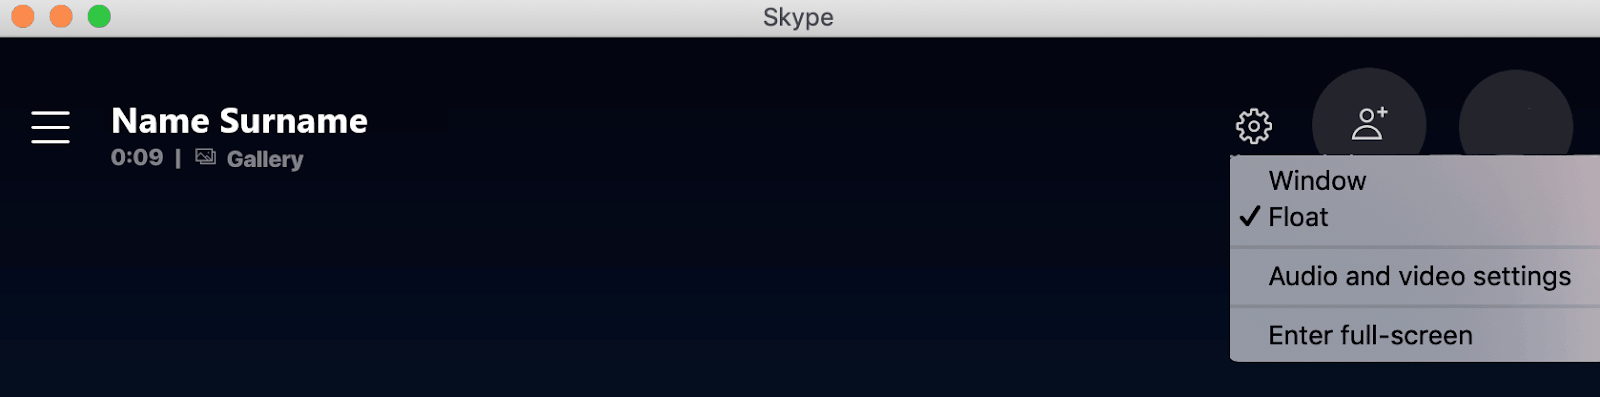 Skype settings during call